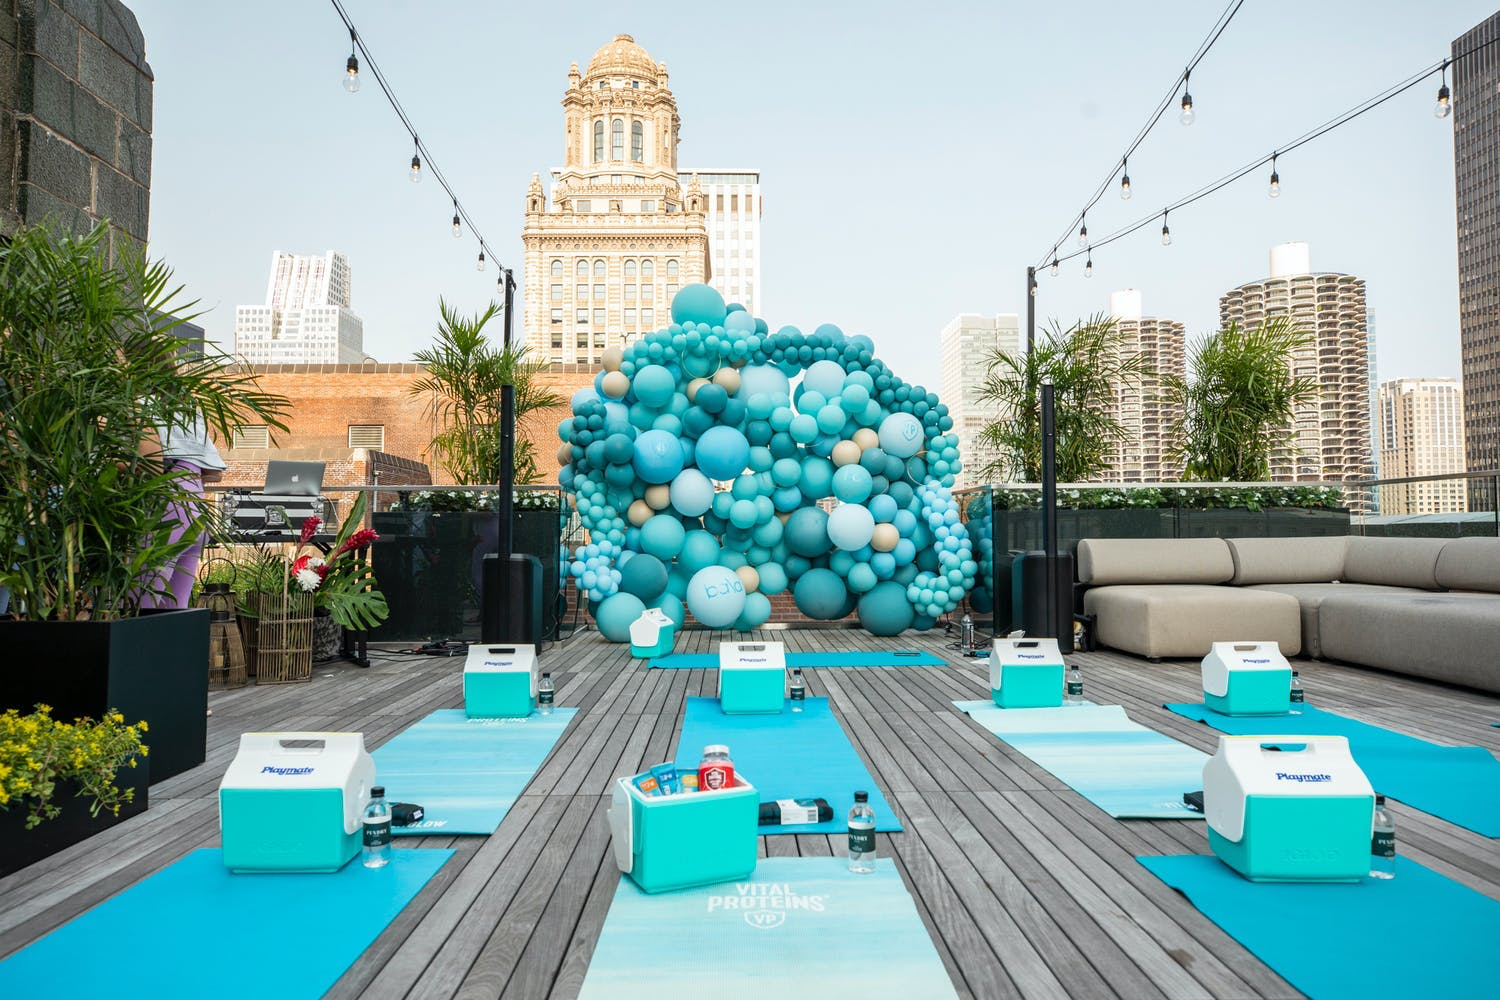 Corporate event with rooftop yoga session and blue décor | PartySlate